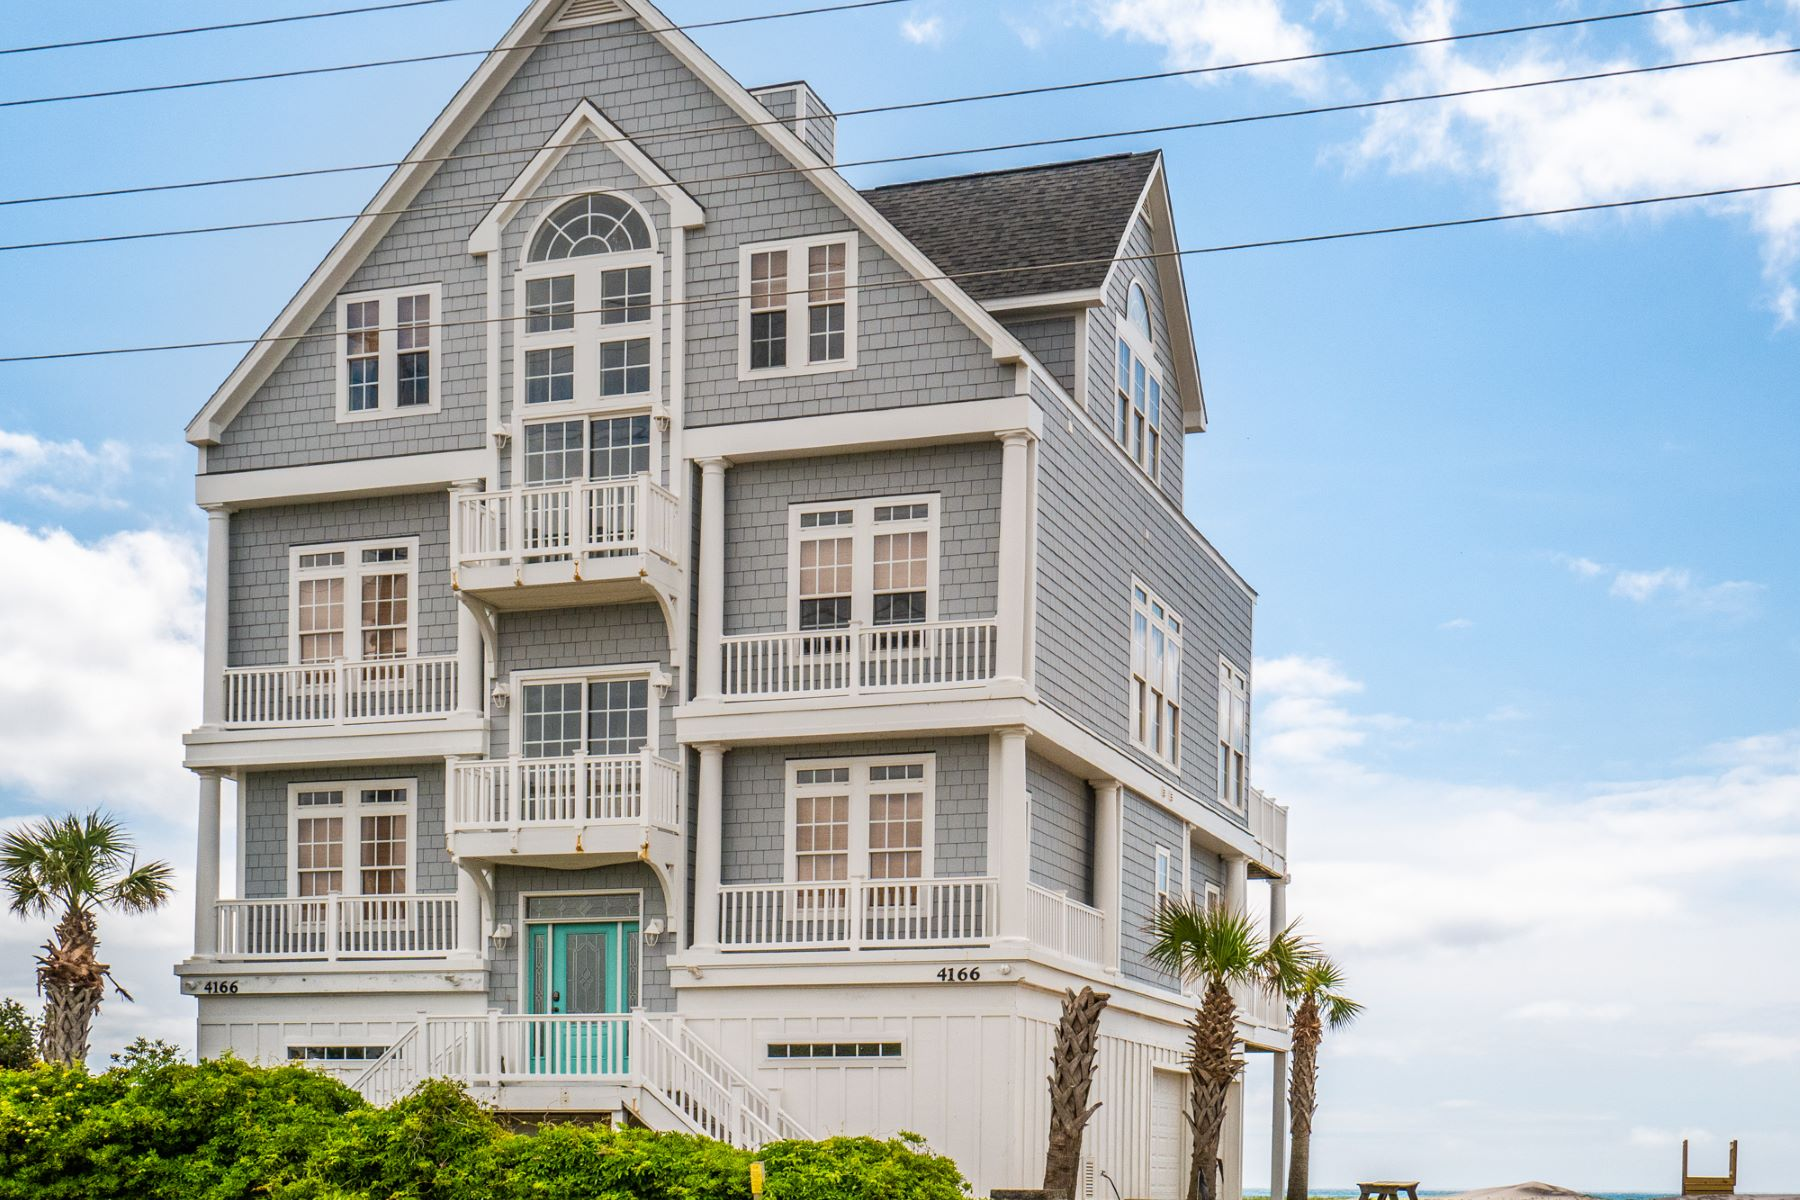 Single Family Homes for Active at Magnificent Oceanfront Getaway in North Topsail 4166 Island Drive N Topsail Beach, North Carolina 28460 United States